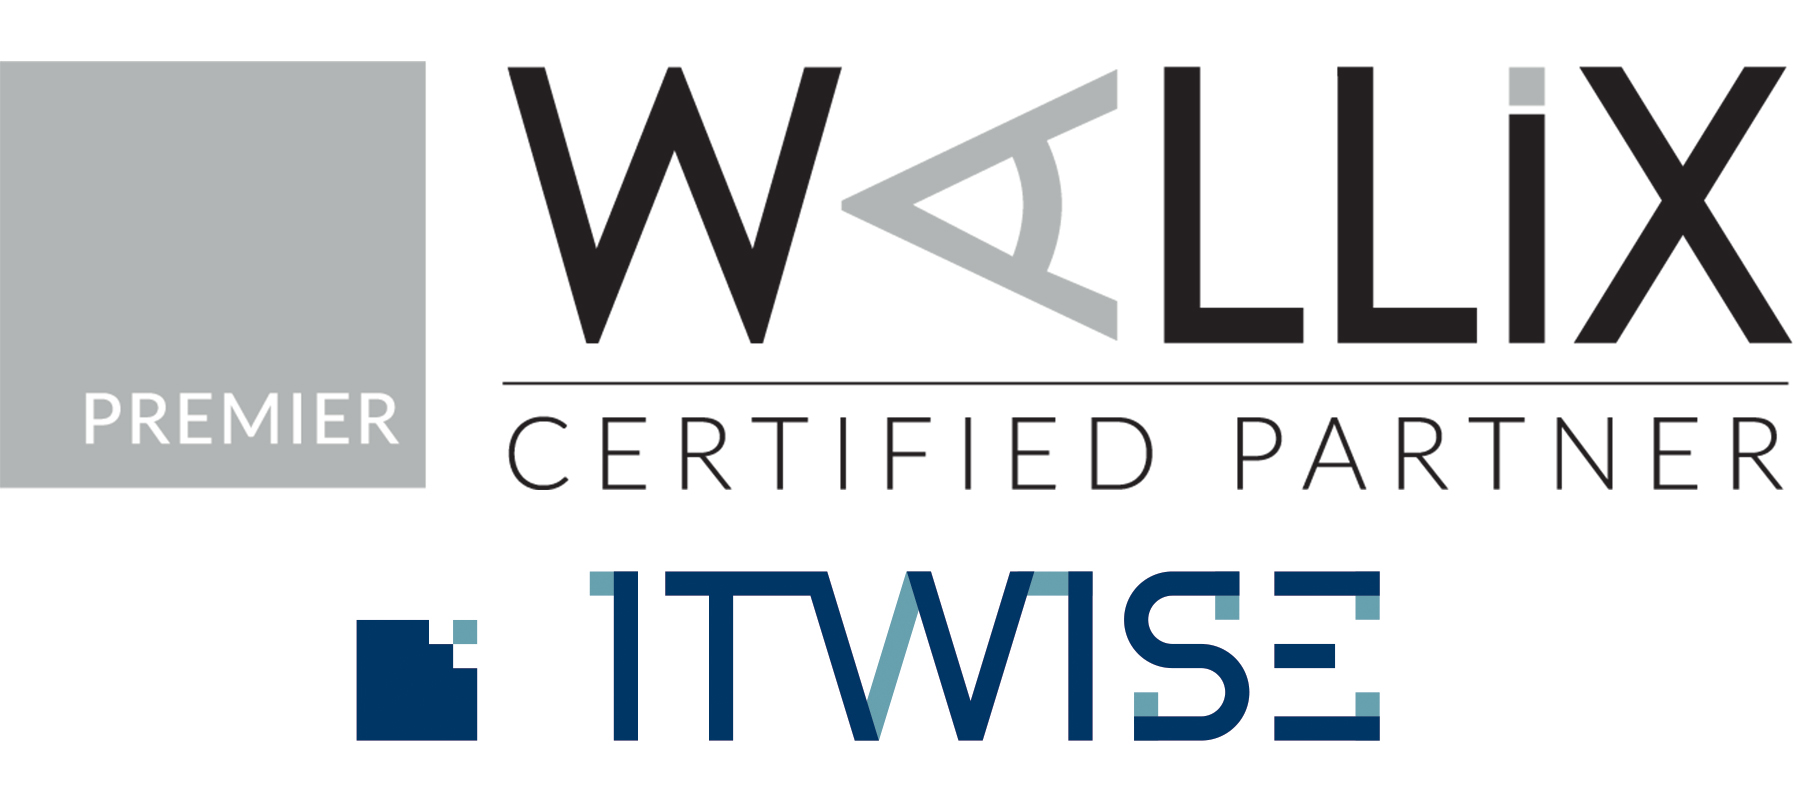 wallix premier partner